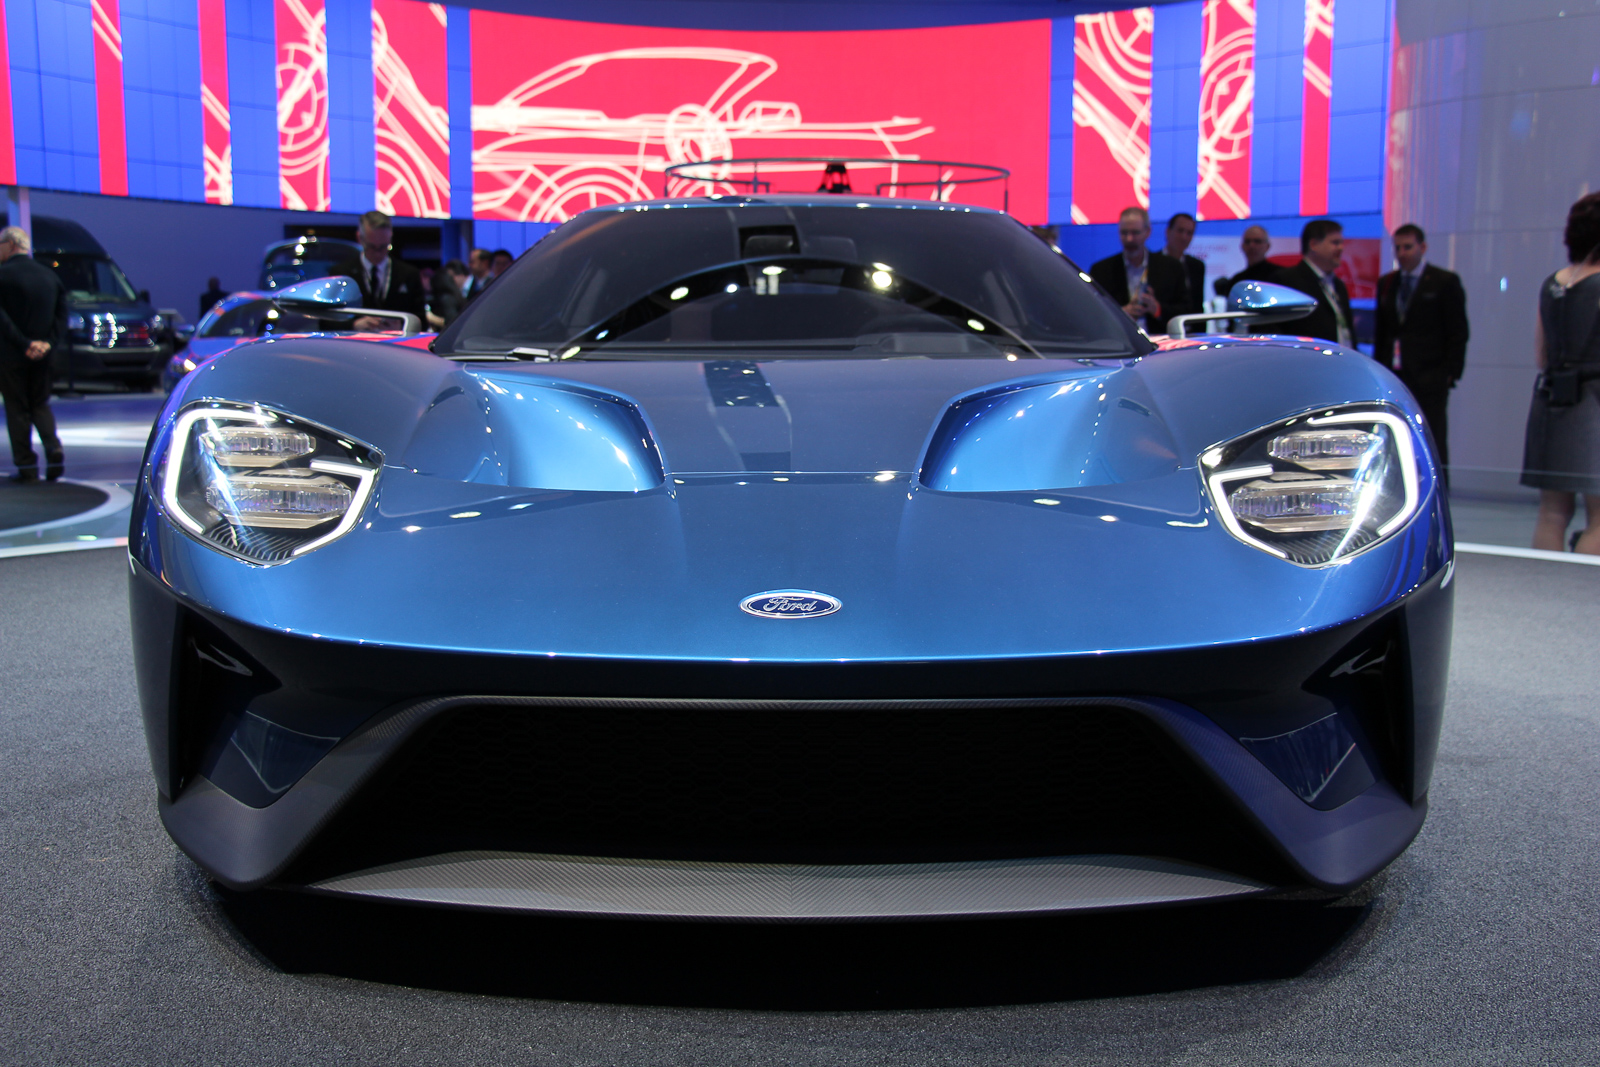 Ford-GT-2016-Concept-NAIAS-2015-Highlights-10